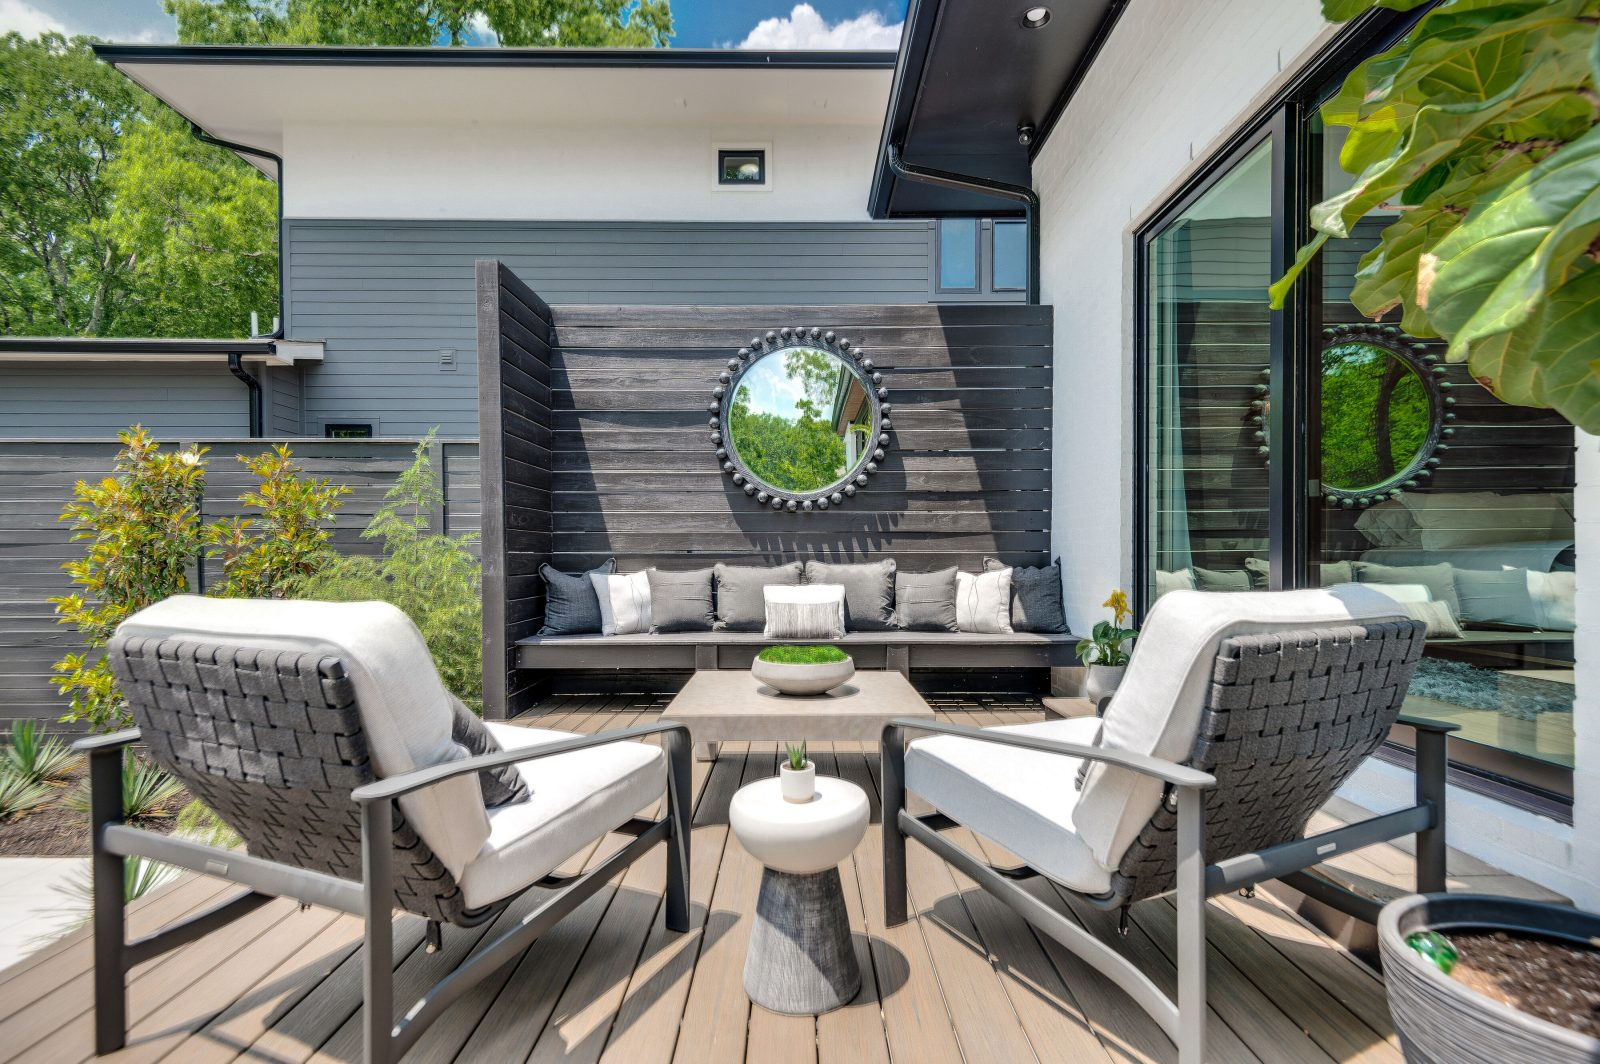 Outdoor patio furniture on this backyard lounge in Green Hills TN